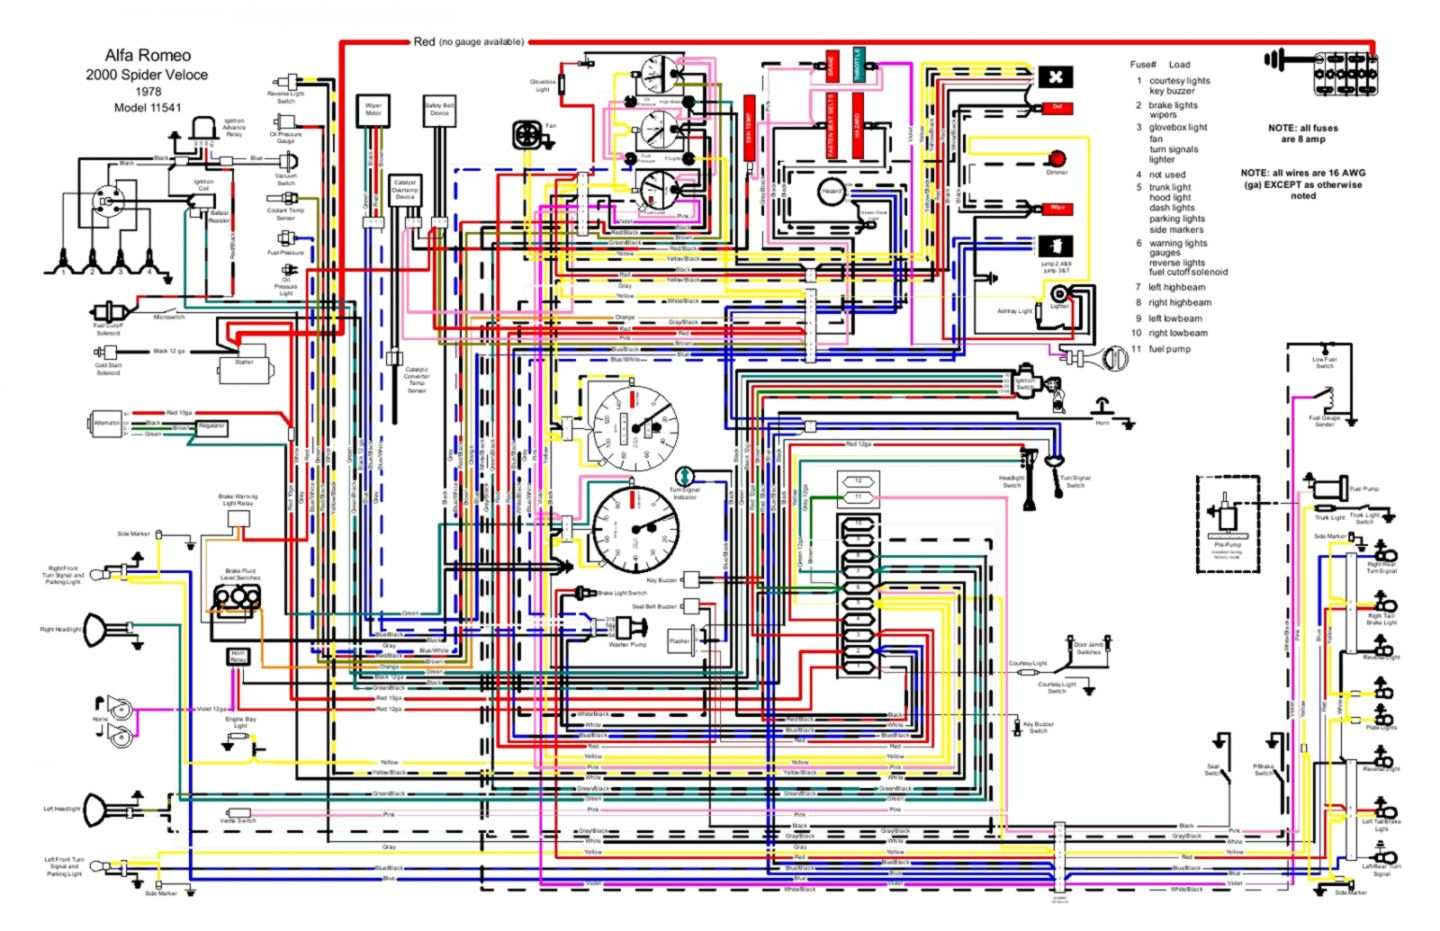 automotive wiring diagram maker wiring diagram paper programmable thermostat wiring diagram wiring diagram app wiring diagram [ 1440 x 931 Pixel ]